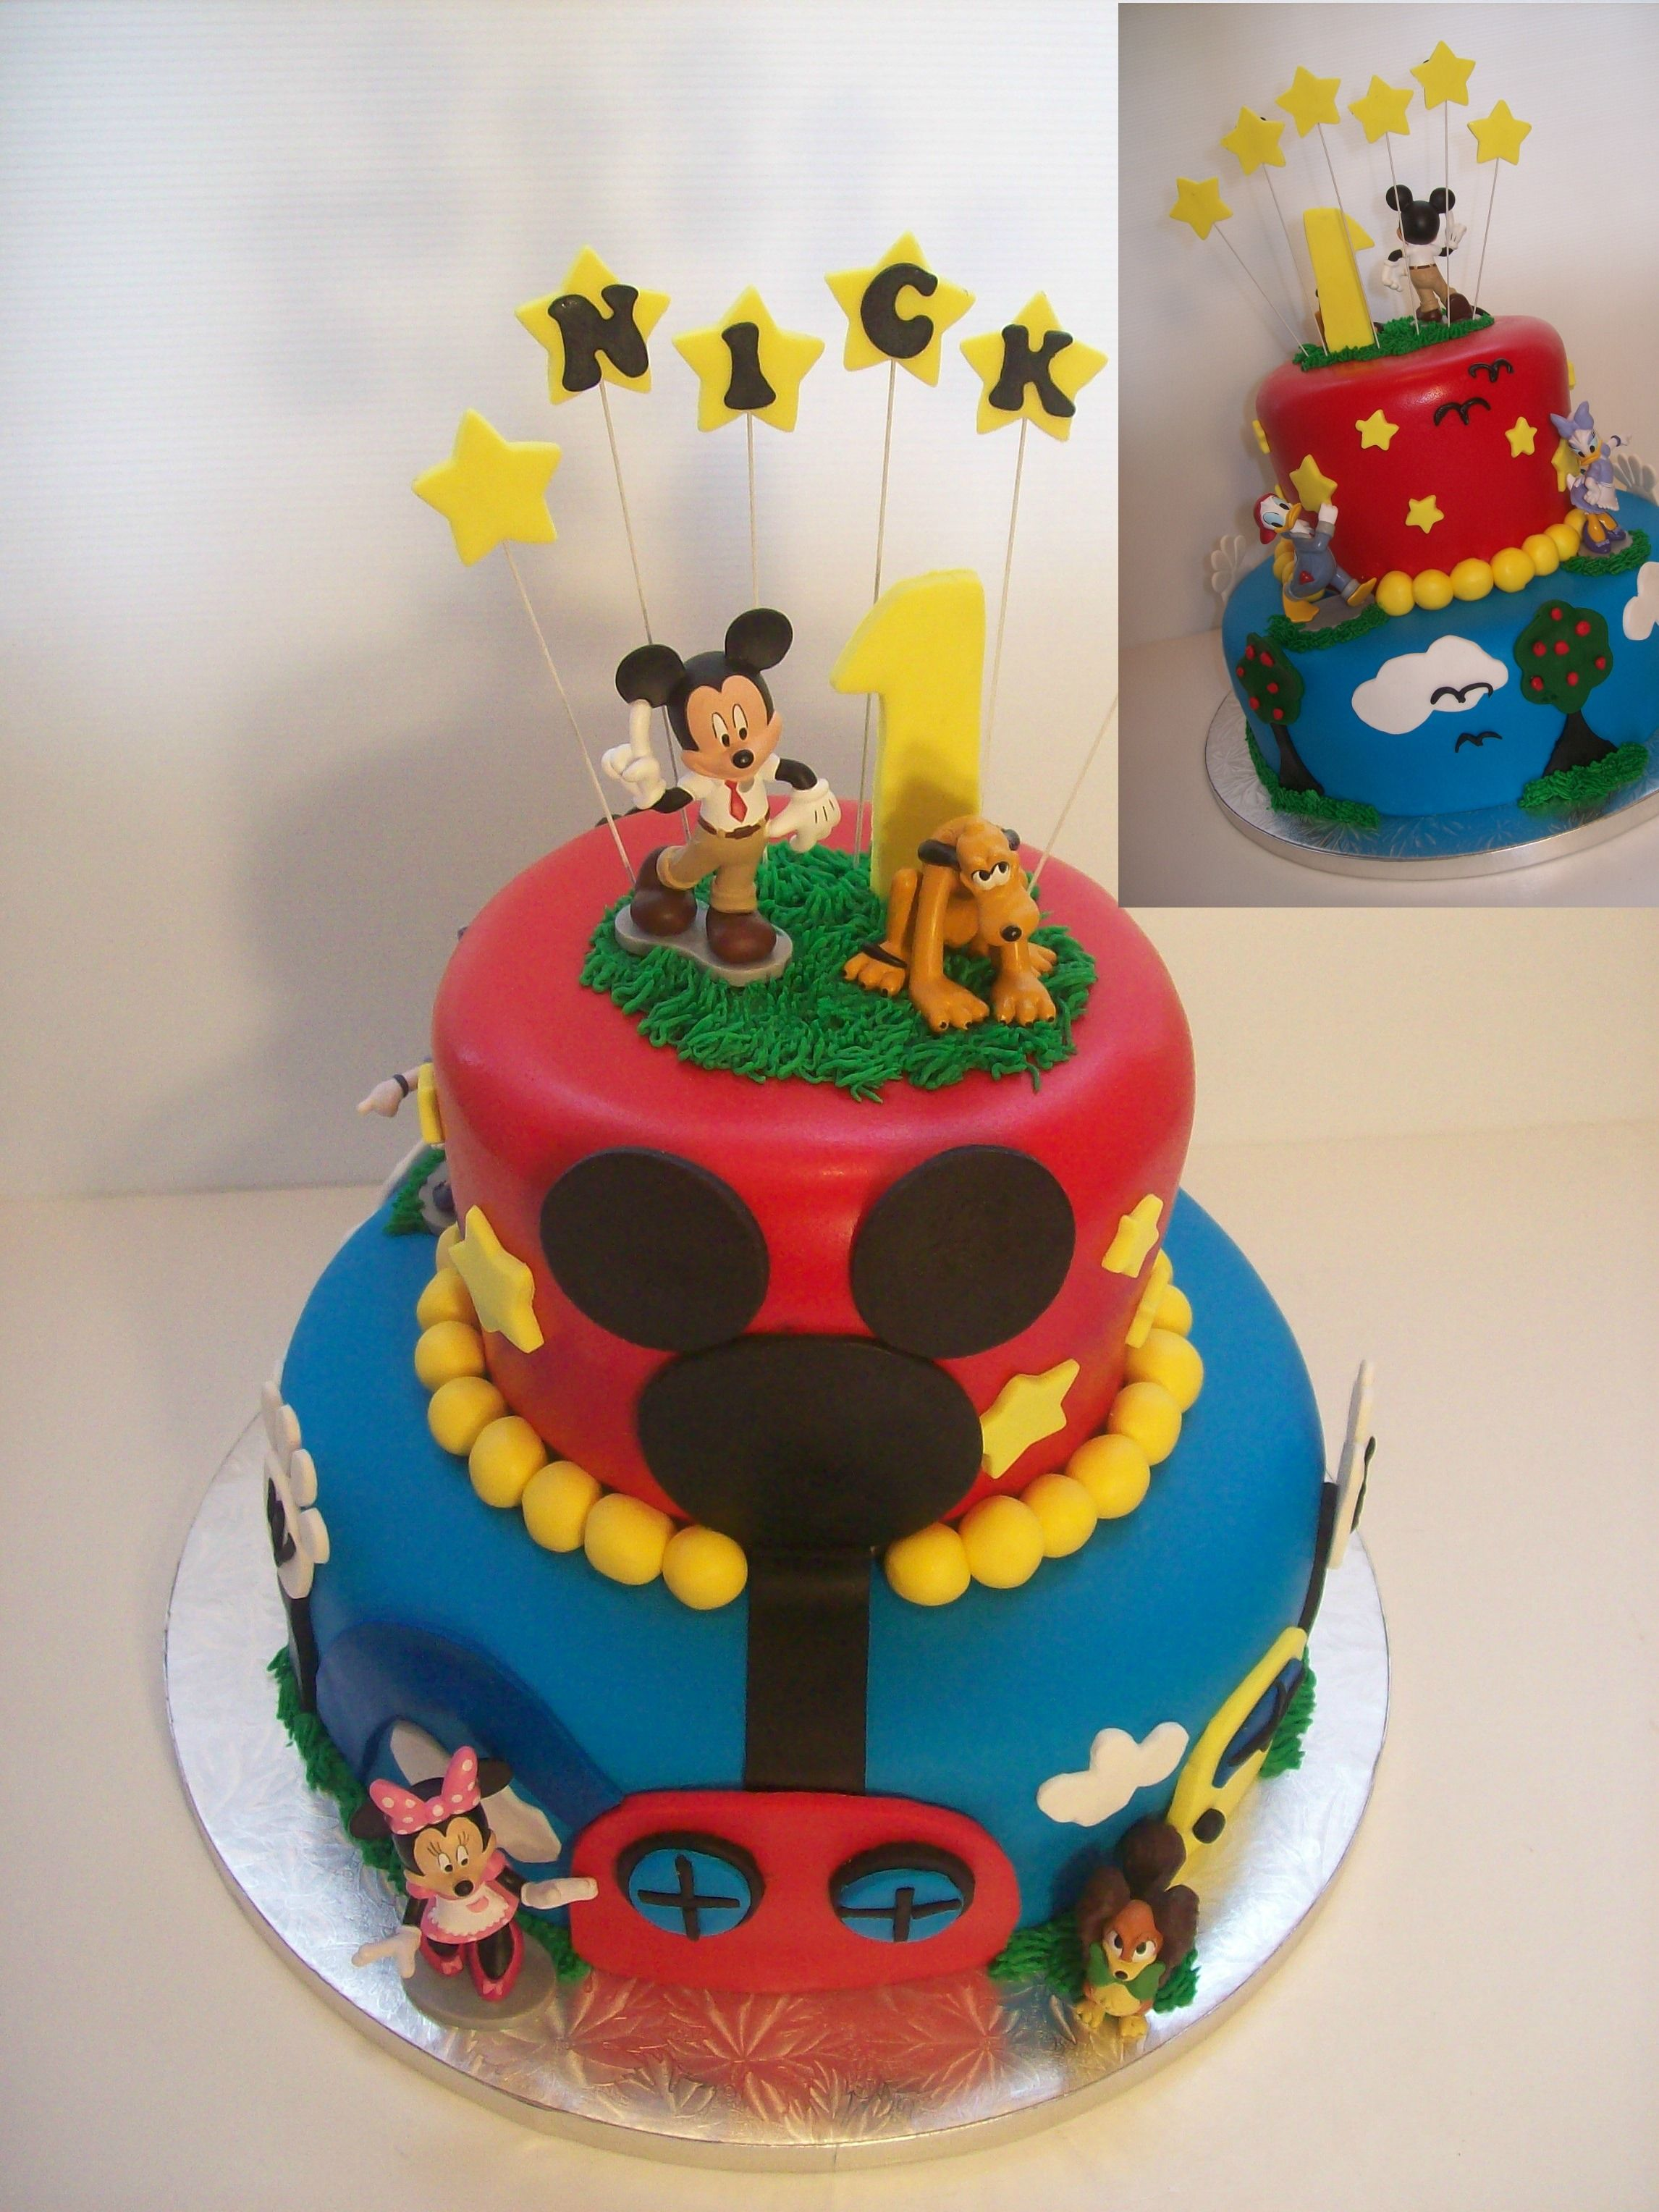 Mickey Clubhouse cake Auckland $350 (figurines bought from a licensed retailer)